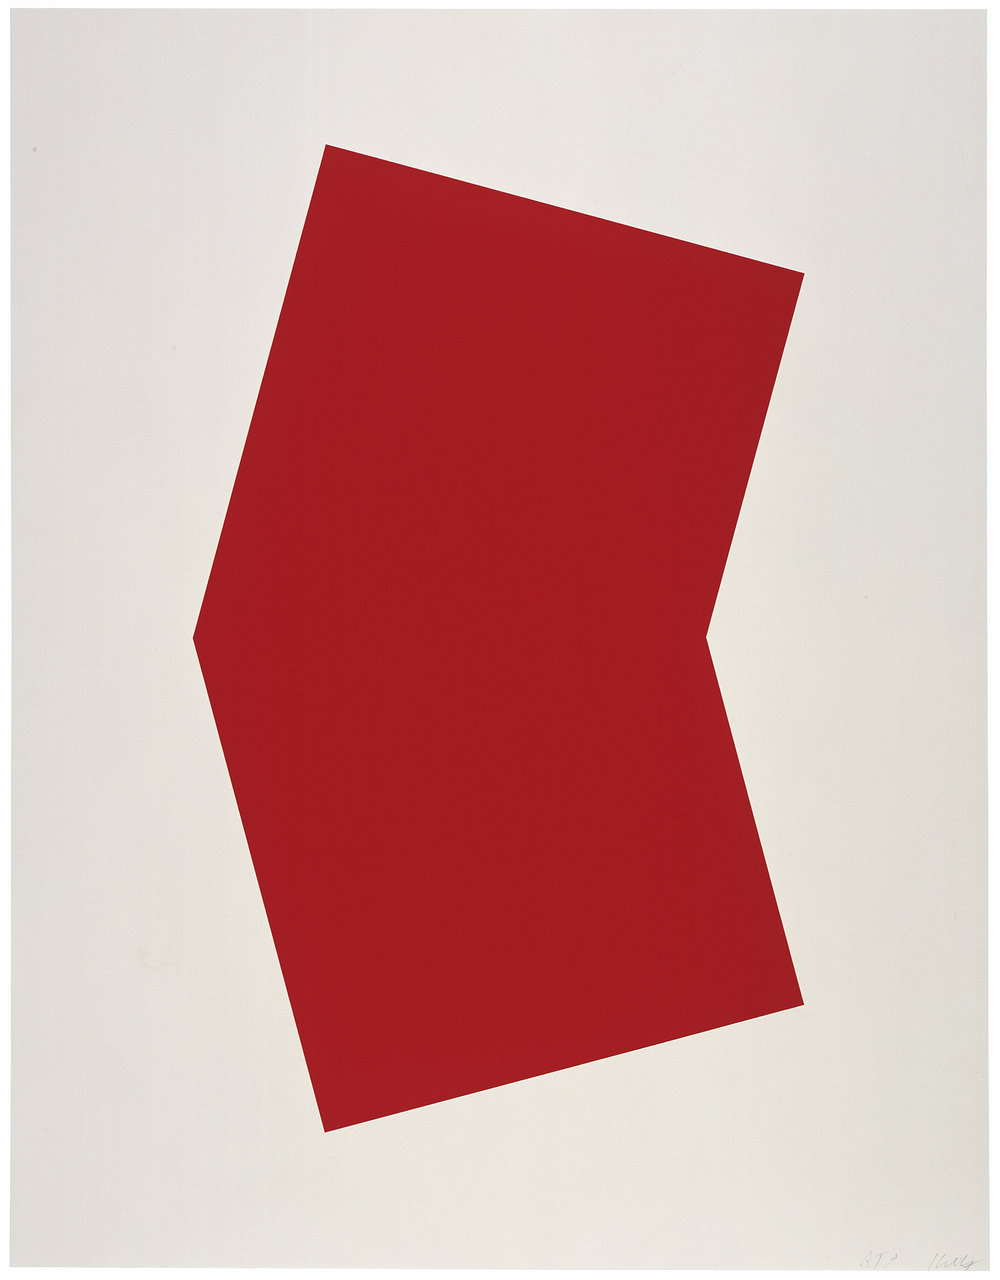 Red, 2001 at the Marjorie Barrick Museum © Ellsworth Kelly and Gemini G.E.L., Los Angeles